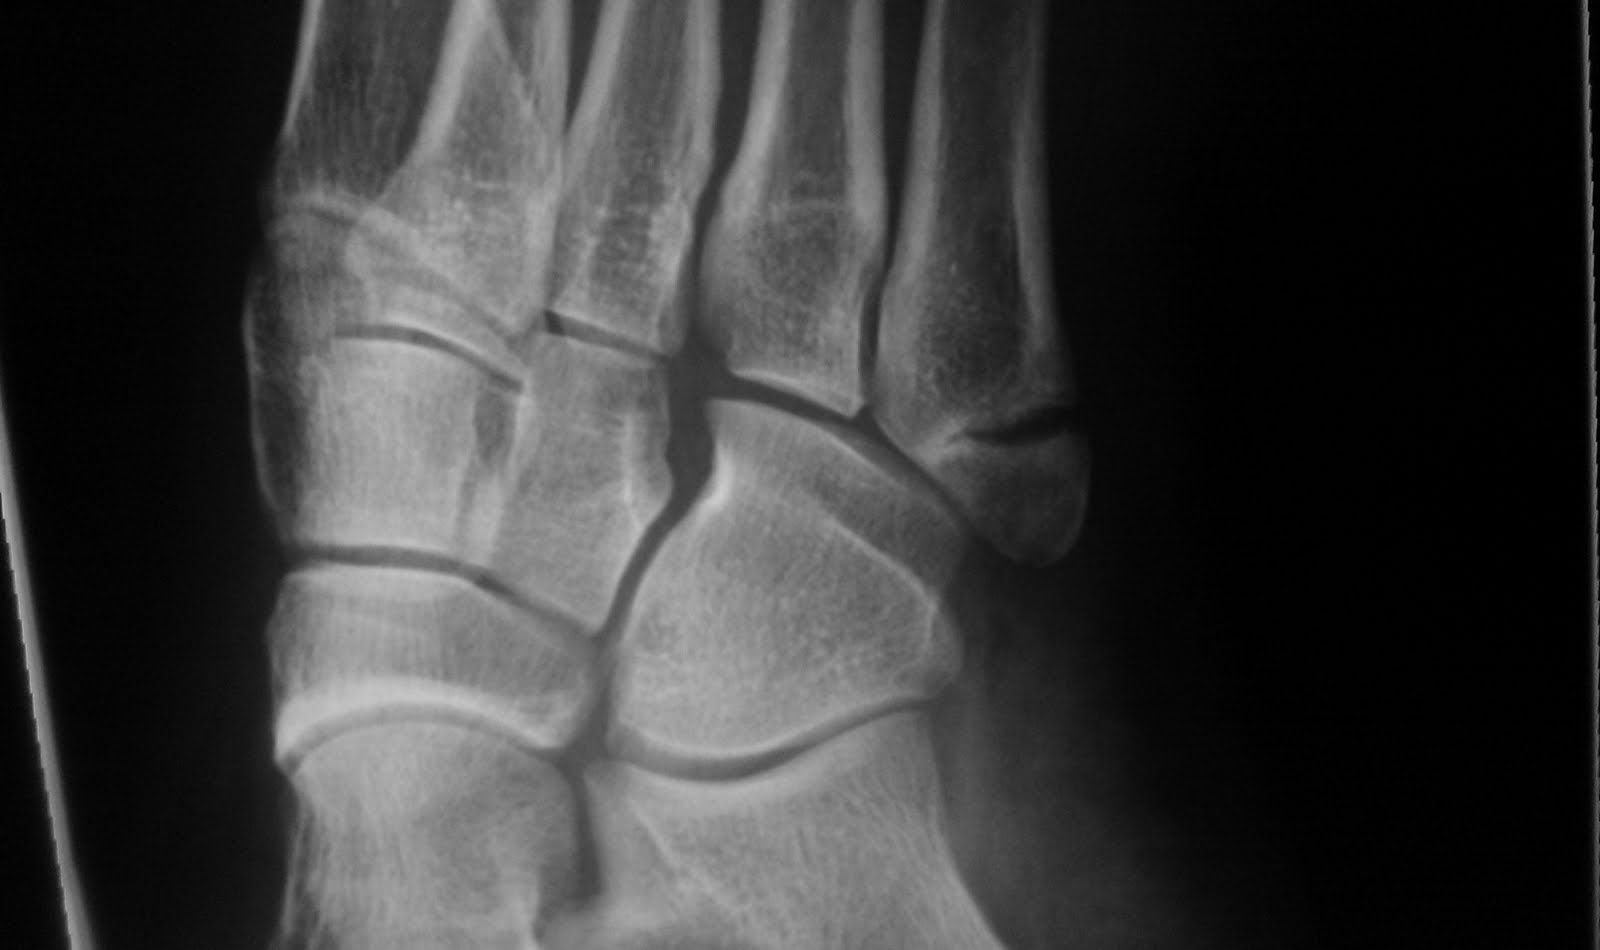 Fracture base of the fifth metatarsal-1.bp.blogspot.com